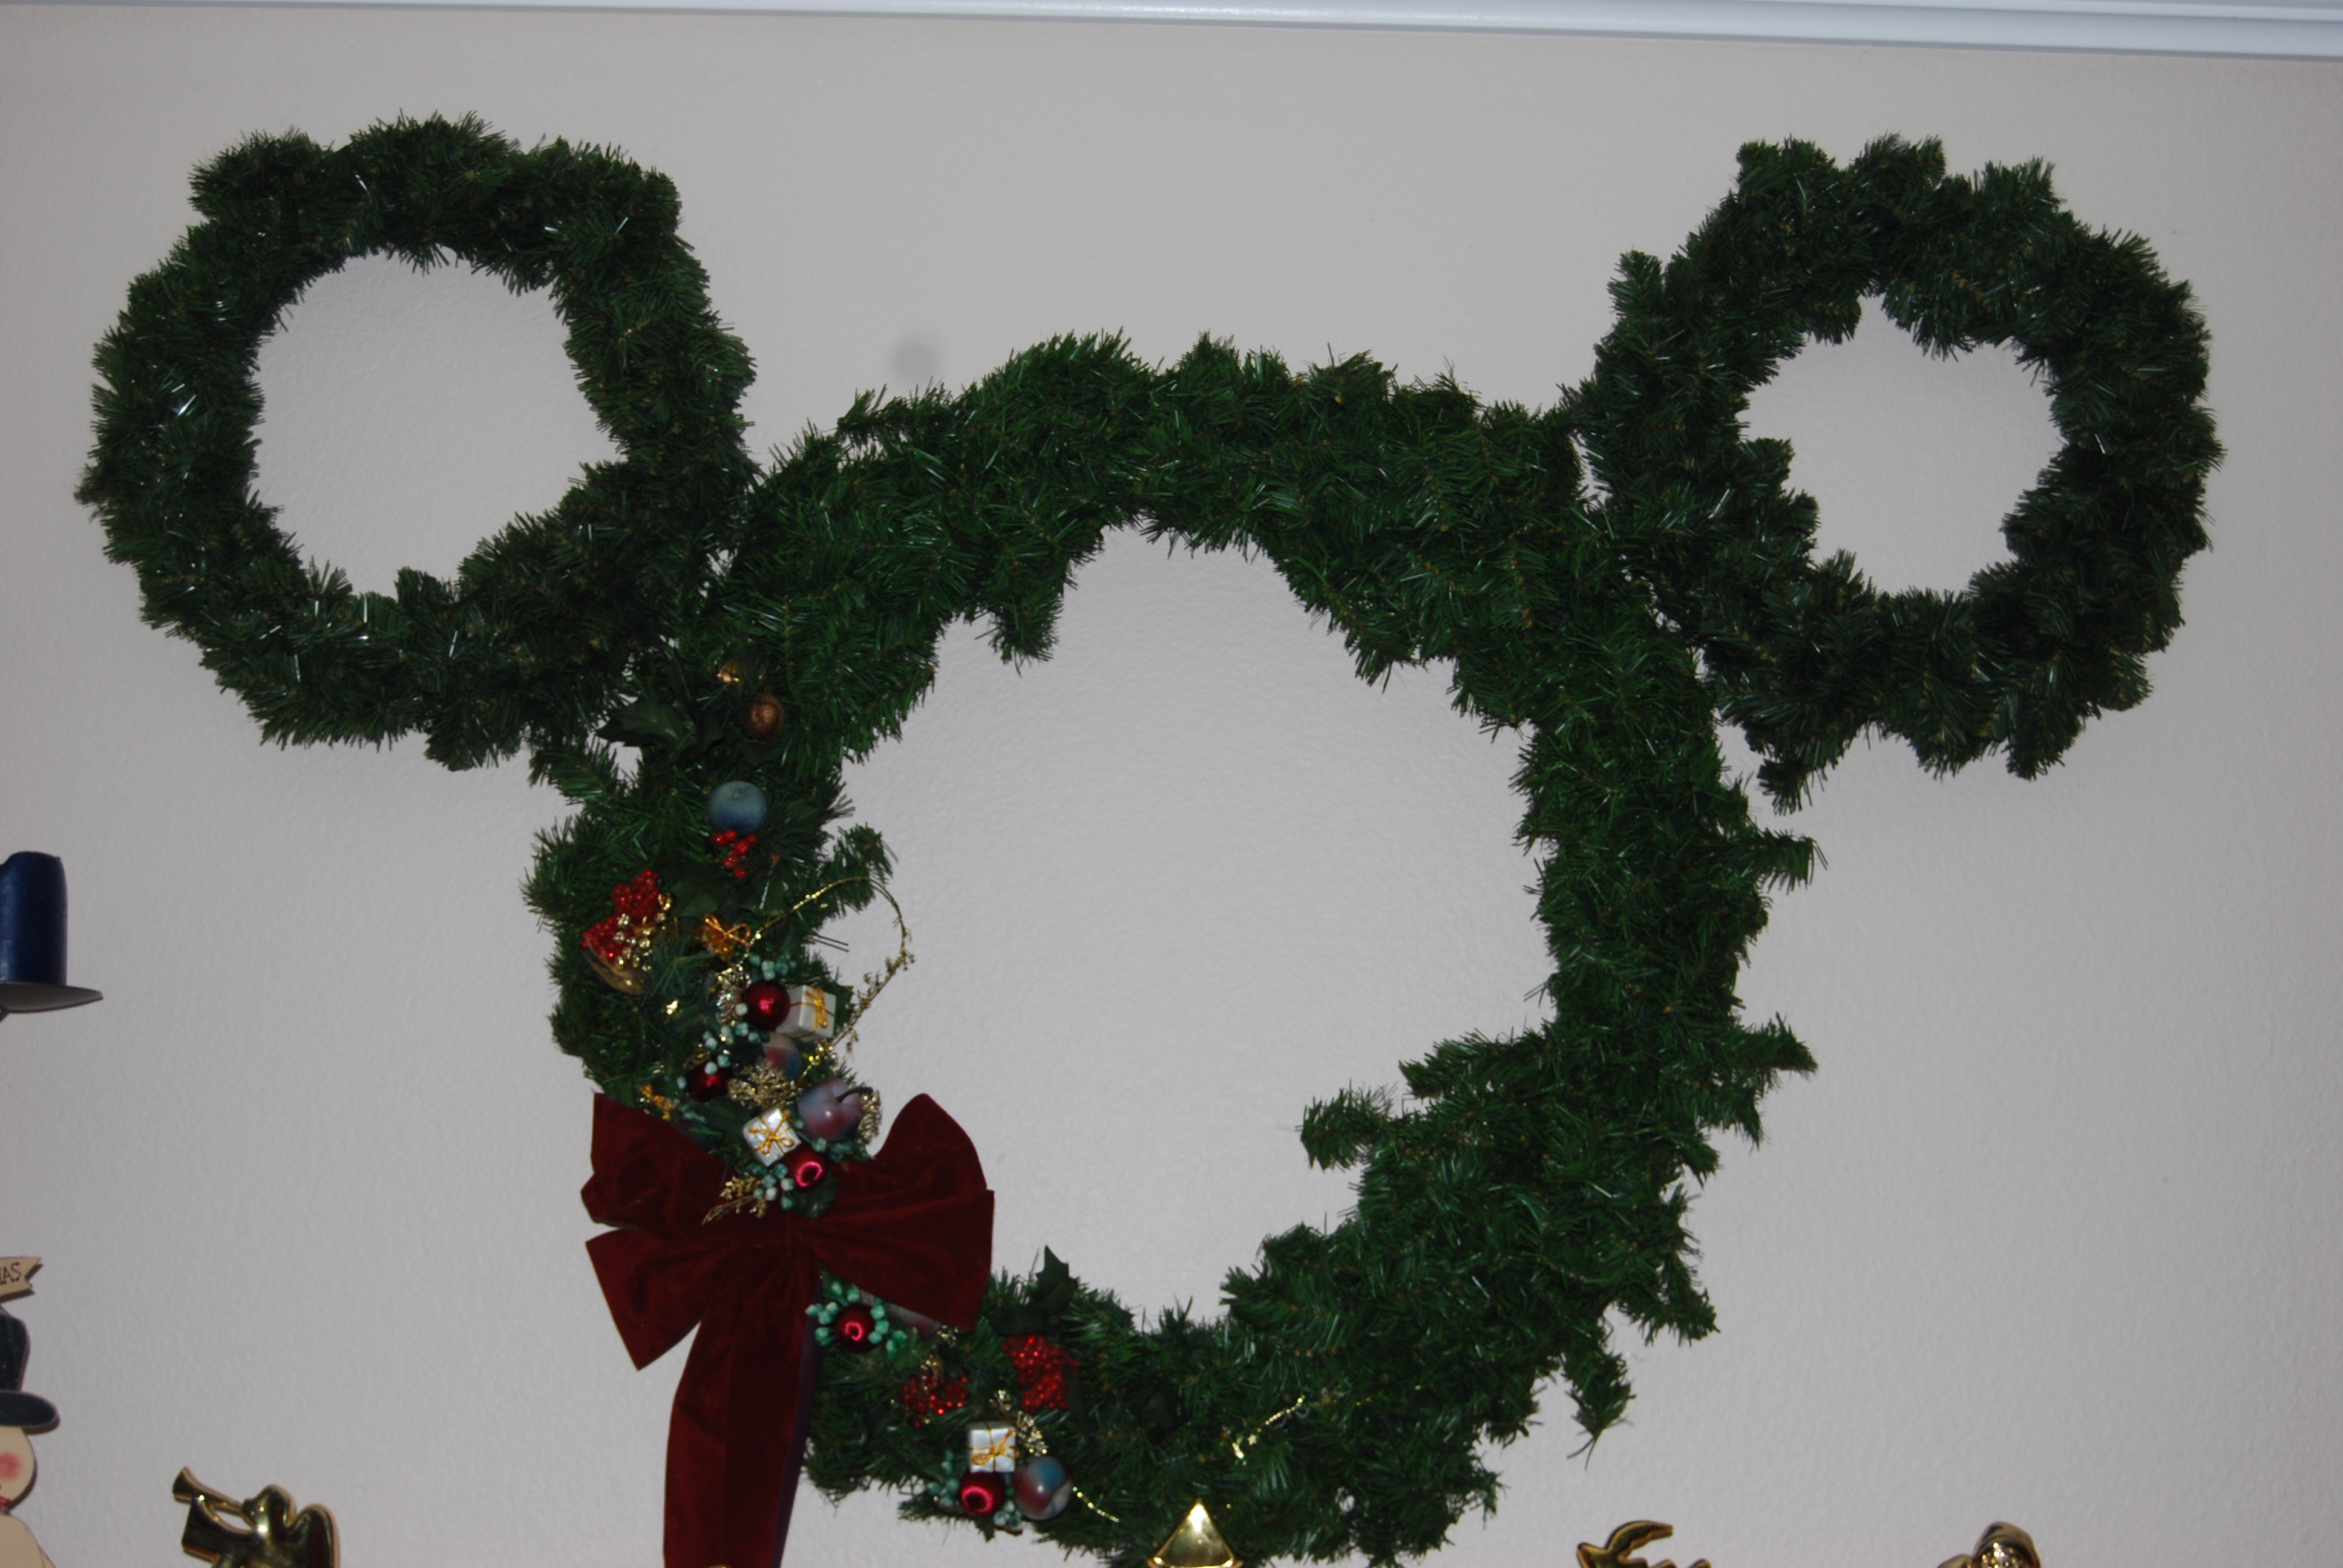 We know it's Christmastime...when the Mickey wreath goes up.